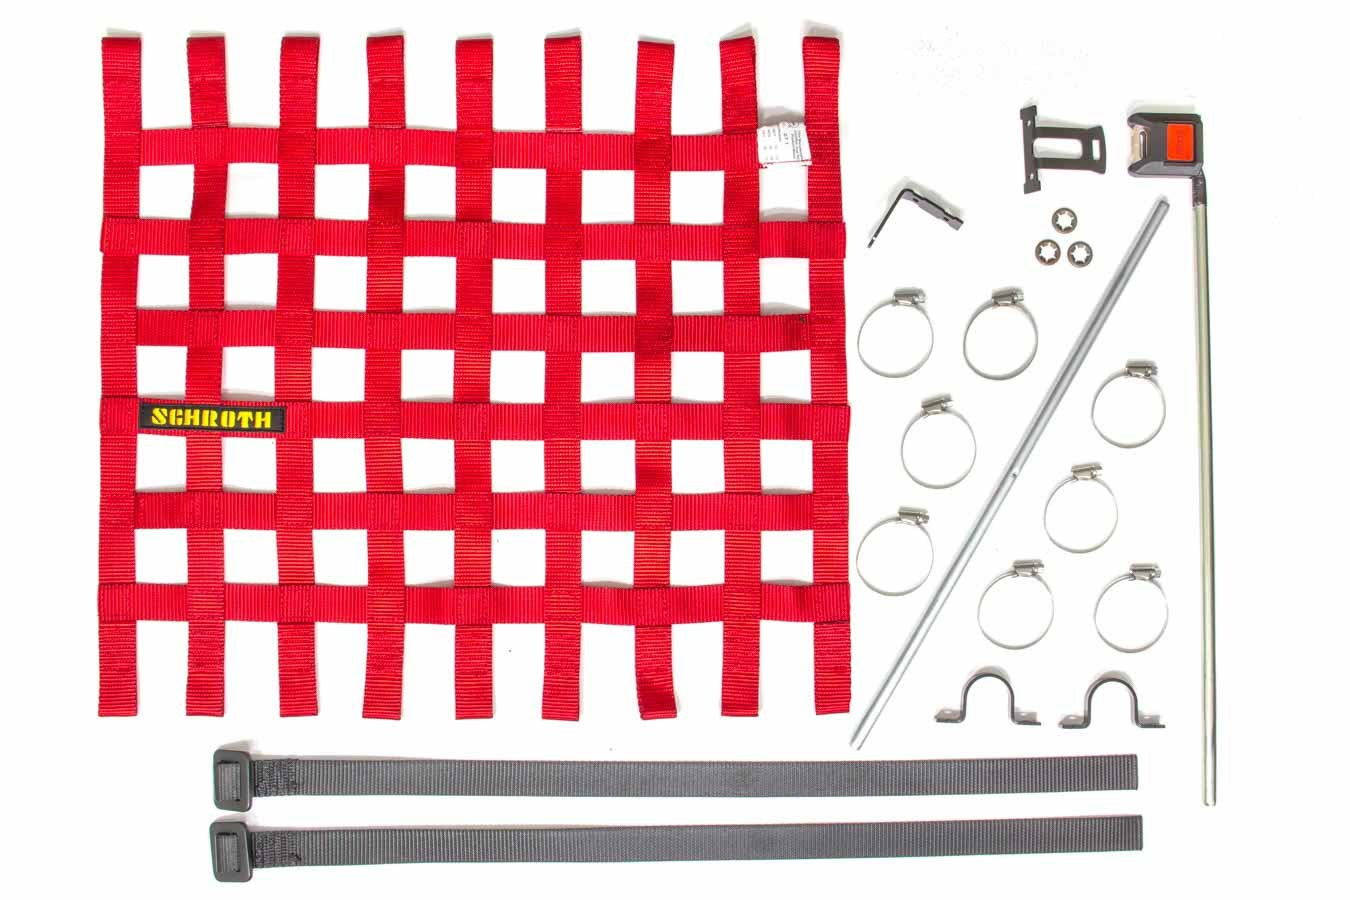 Schroth Racing SR09045-2 Window Net, SFI 27.1, FIA Approved, 1 in Webbing, 18-1/2 x 24 in Rectangle, Installation Hardware Included, Red, Kit